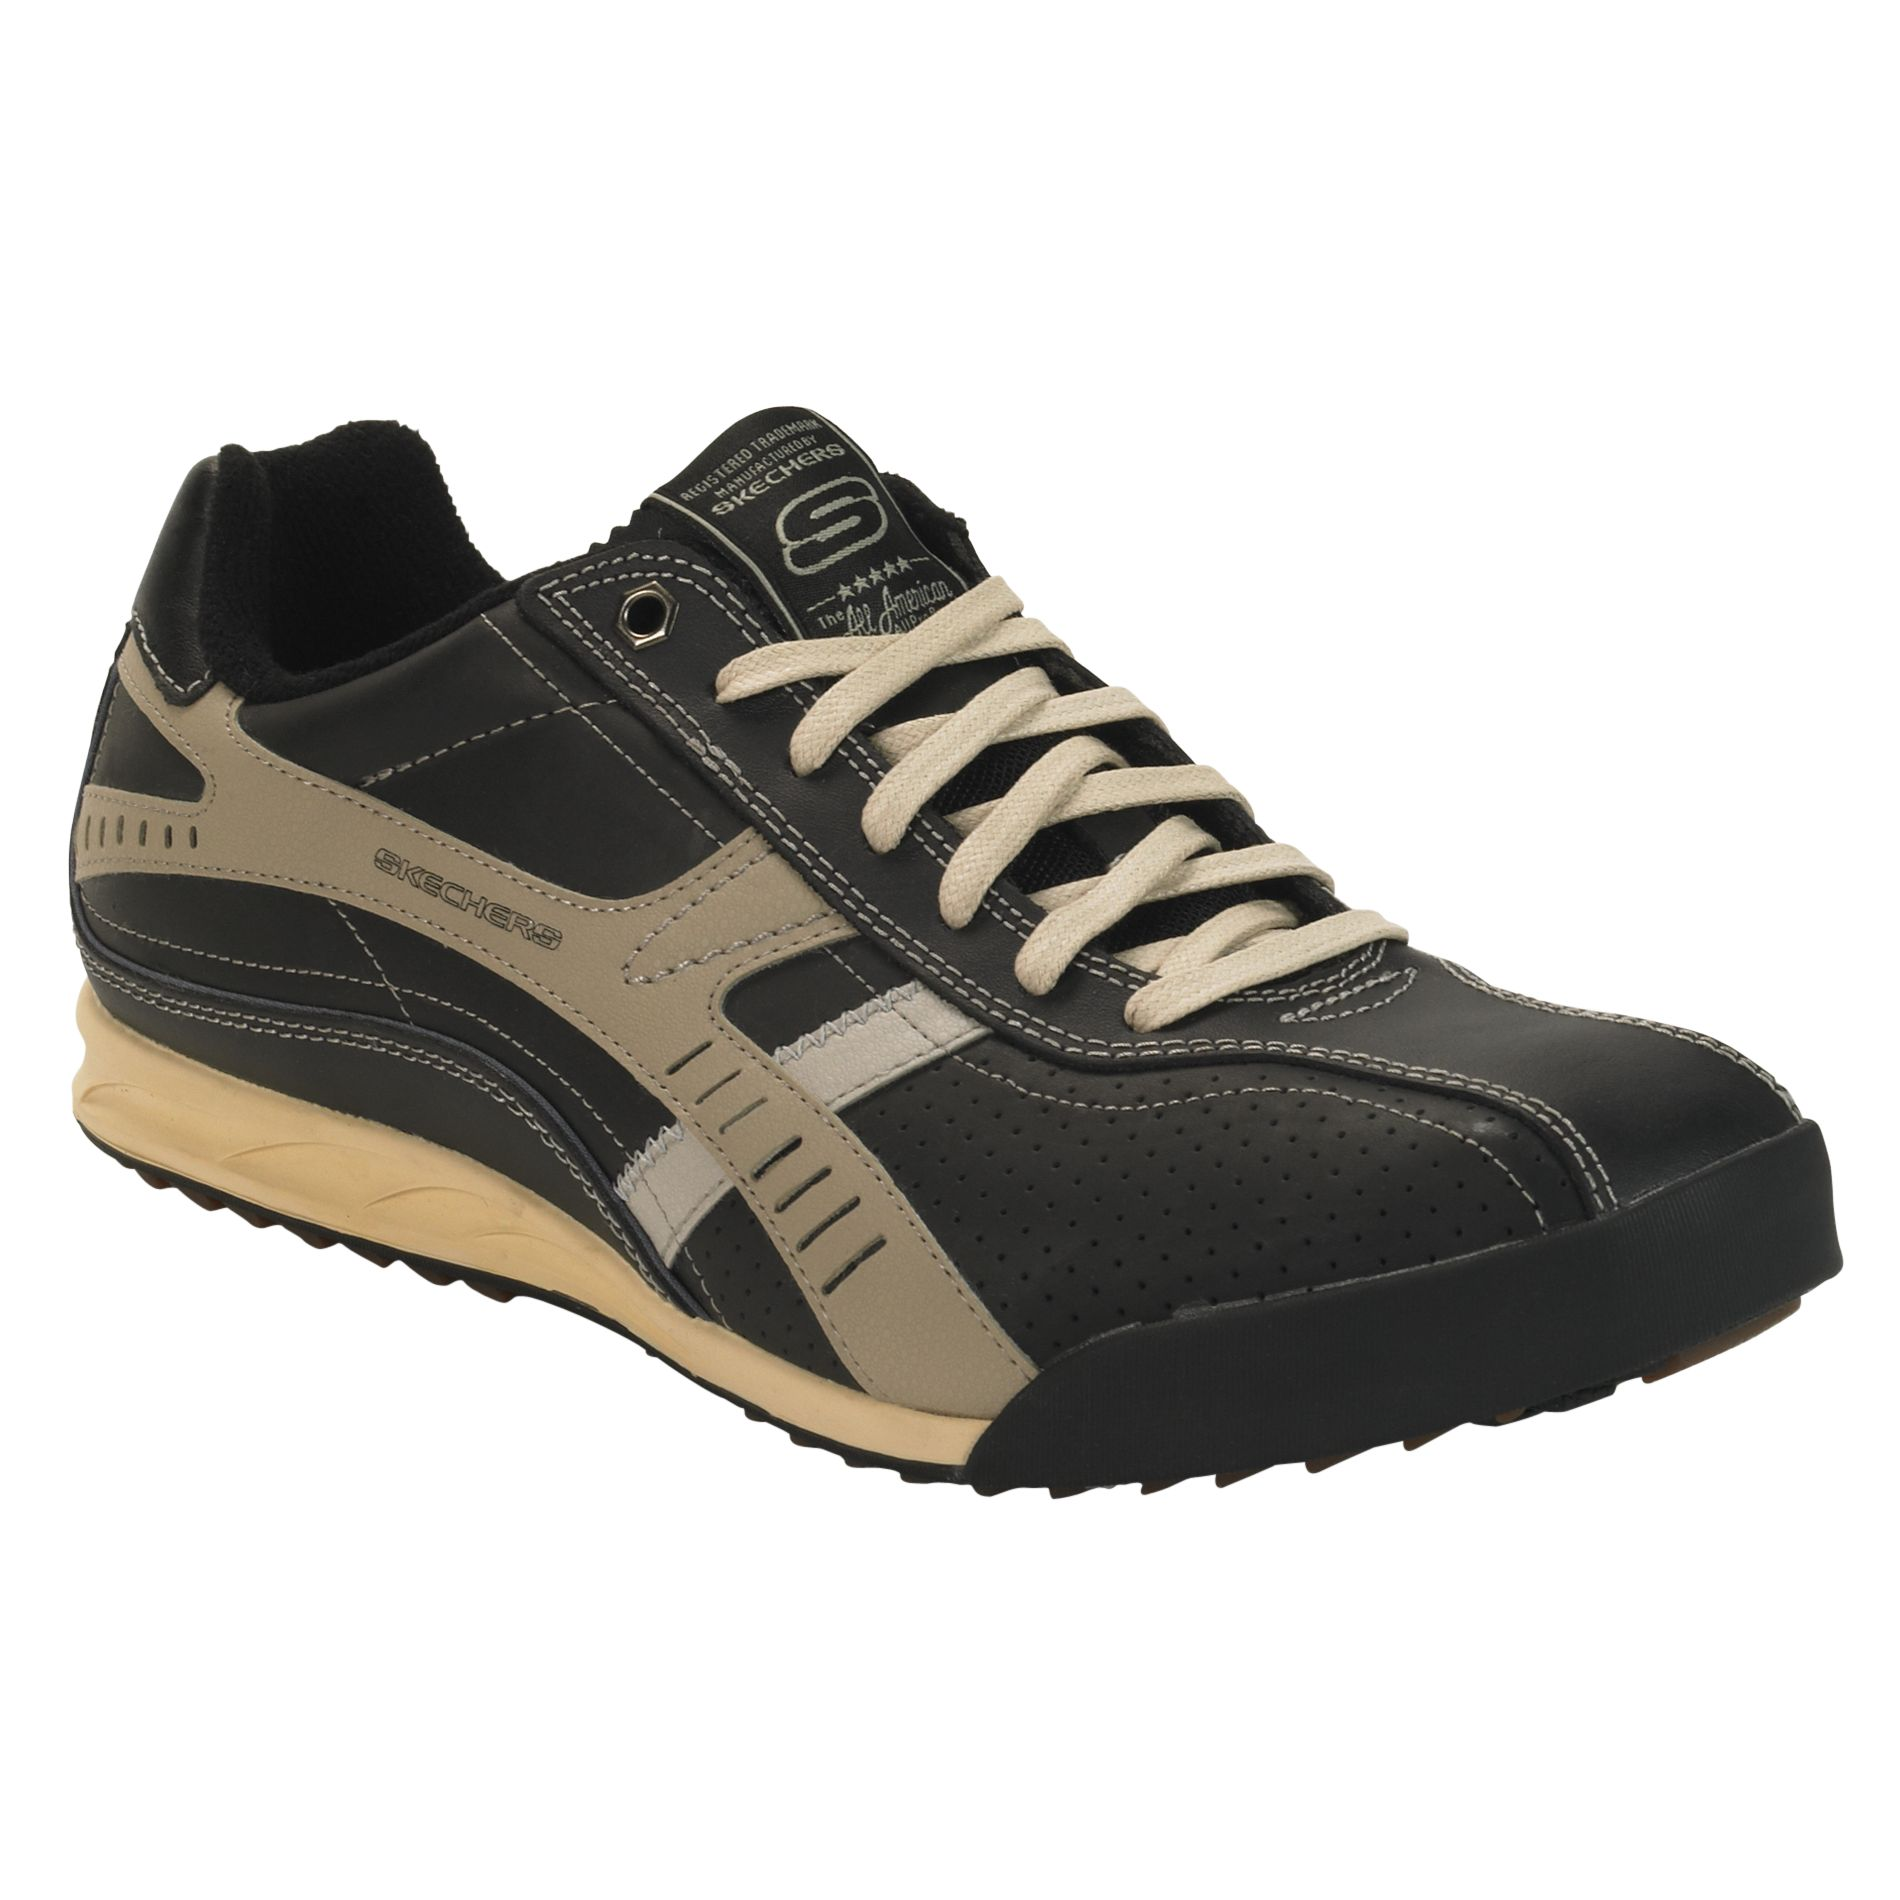 Skechers  Men's Piceno Casual Athletic Shoe - Black/Tan